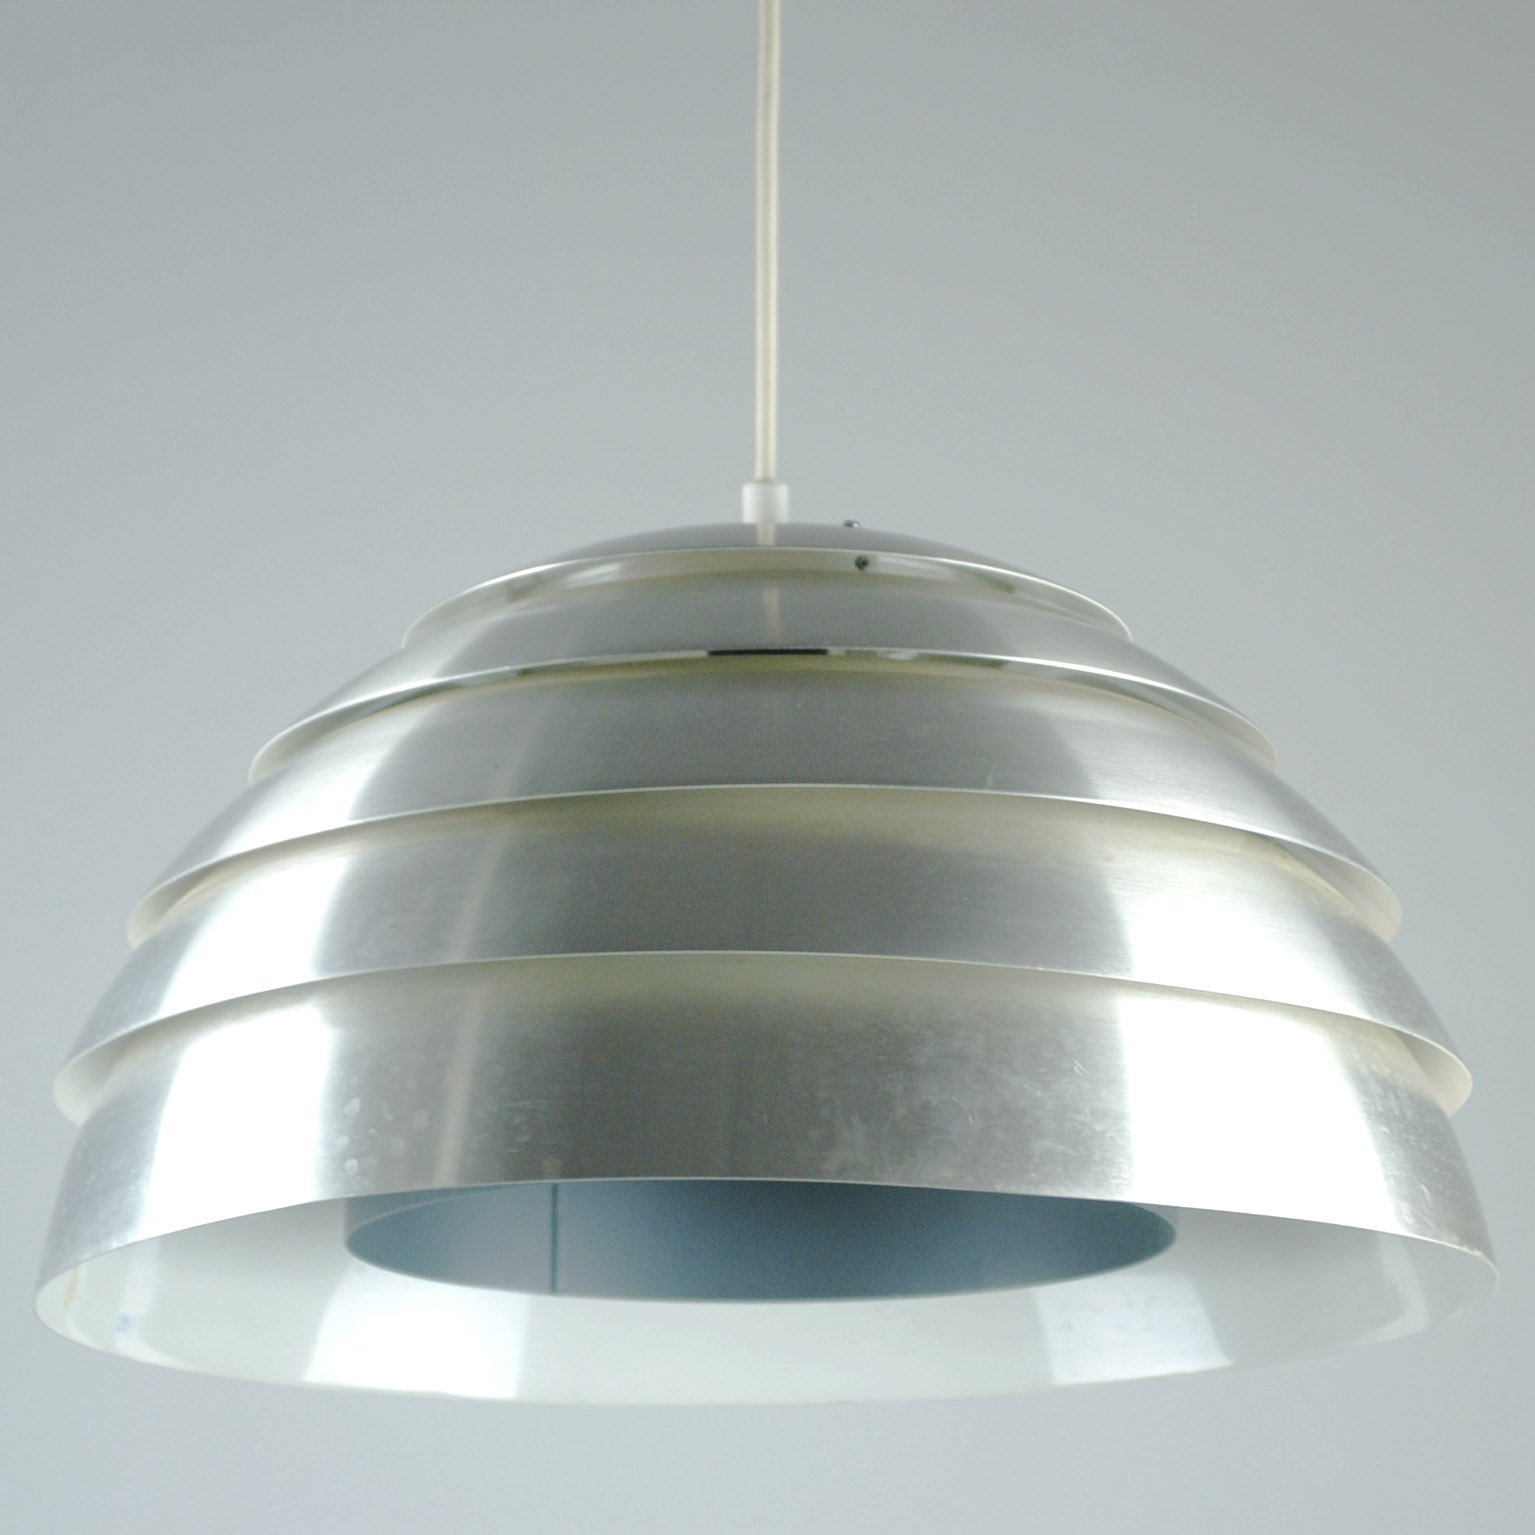 Scandinavian modern ceiling lamp dome by hans agne jakobsson 73528 scandinavian modern ceiling lamp mozeypictures Image collections